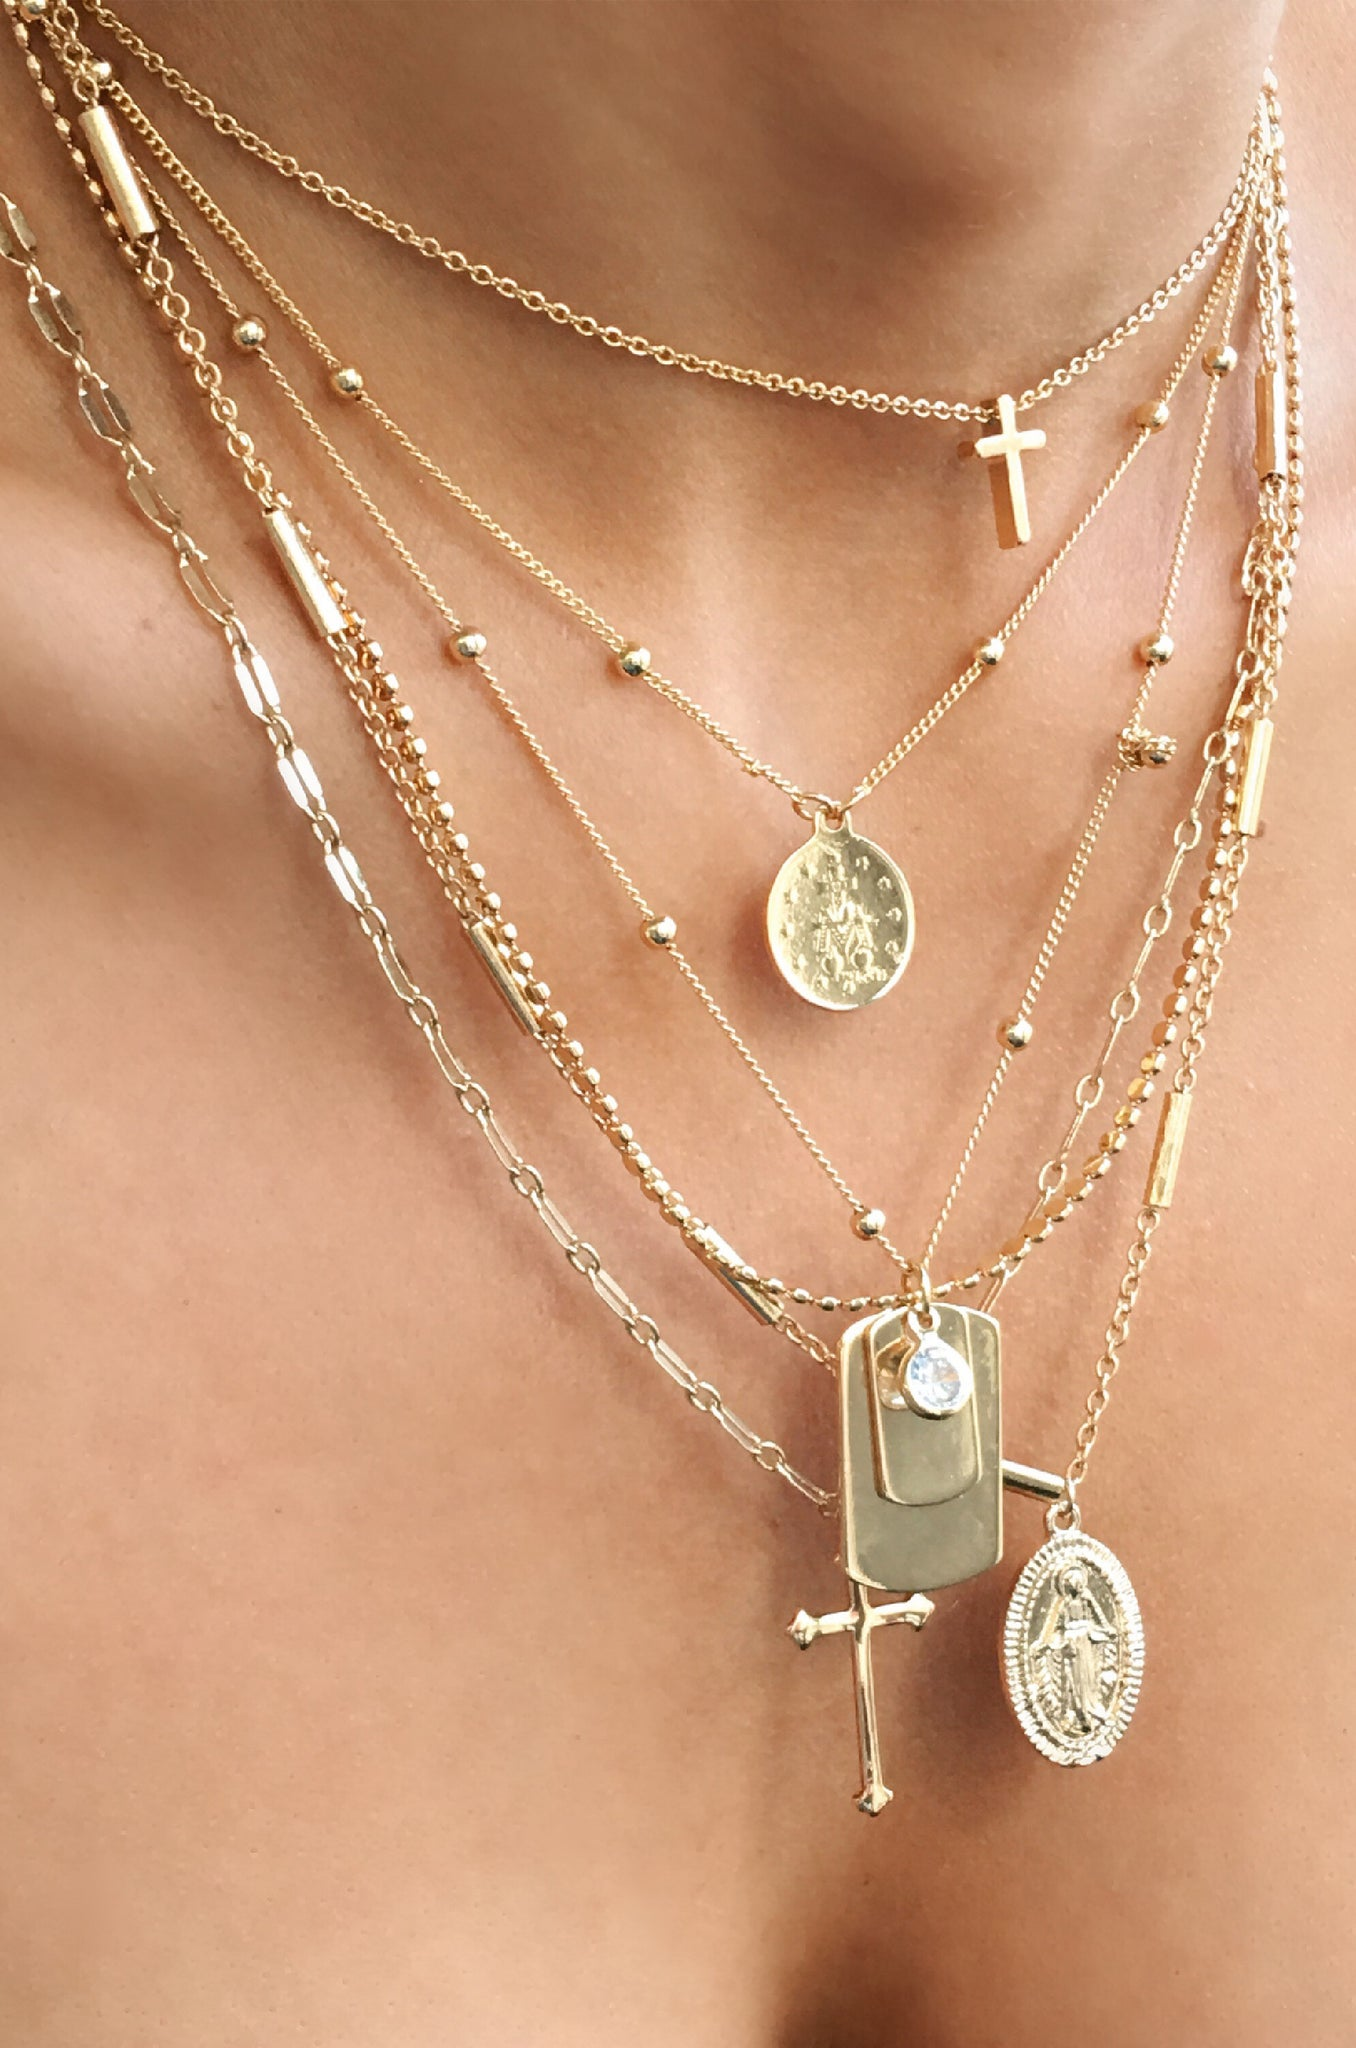 Like a Prayer Gold Layered Cross and Coin Necklace